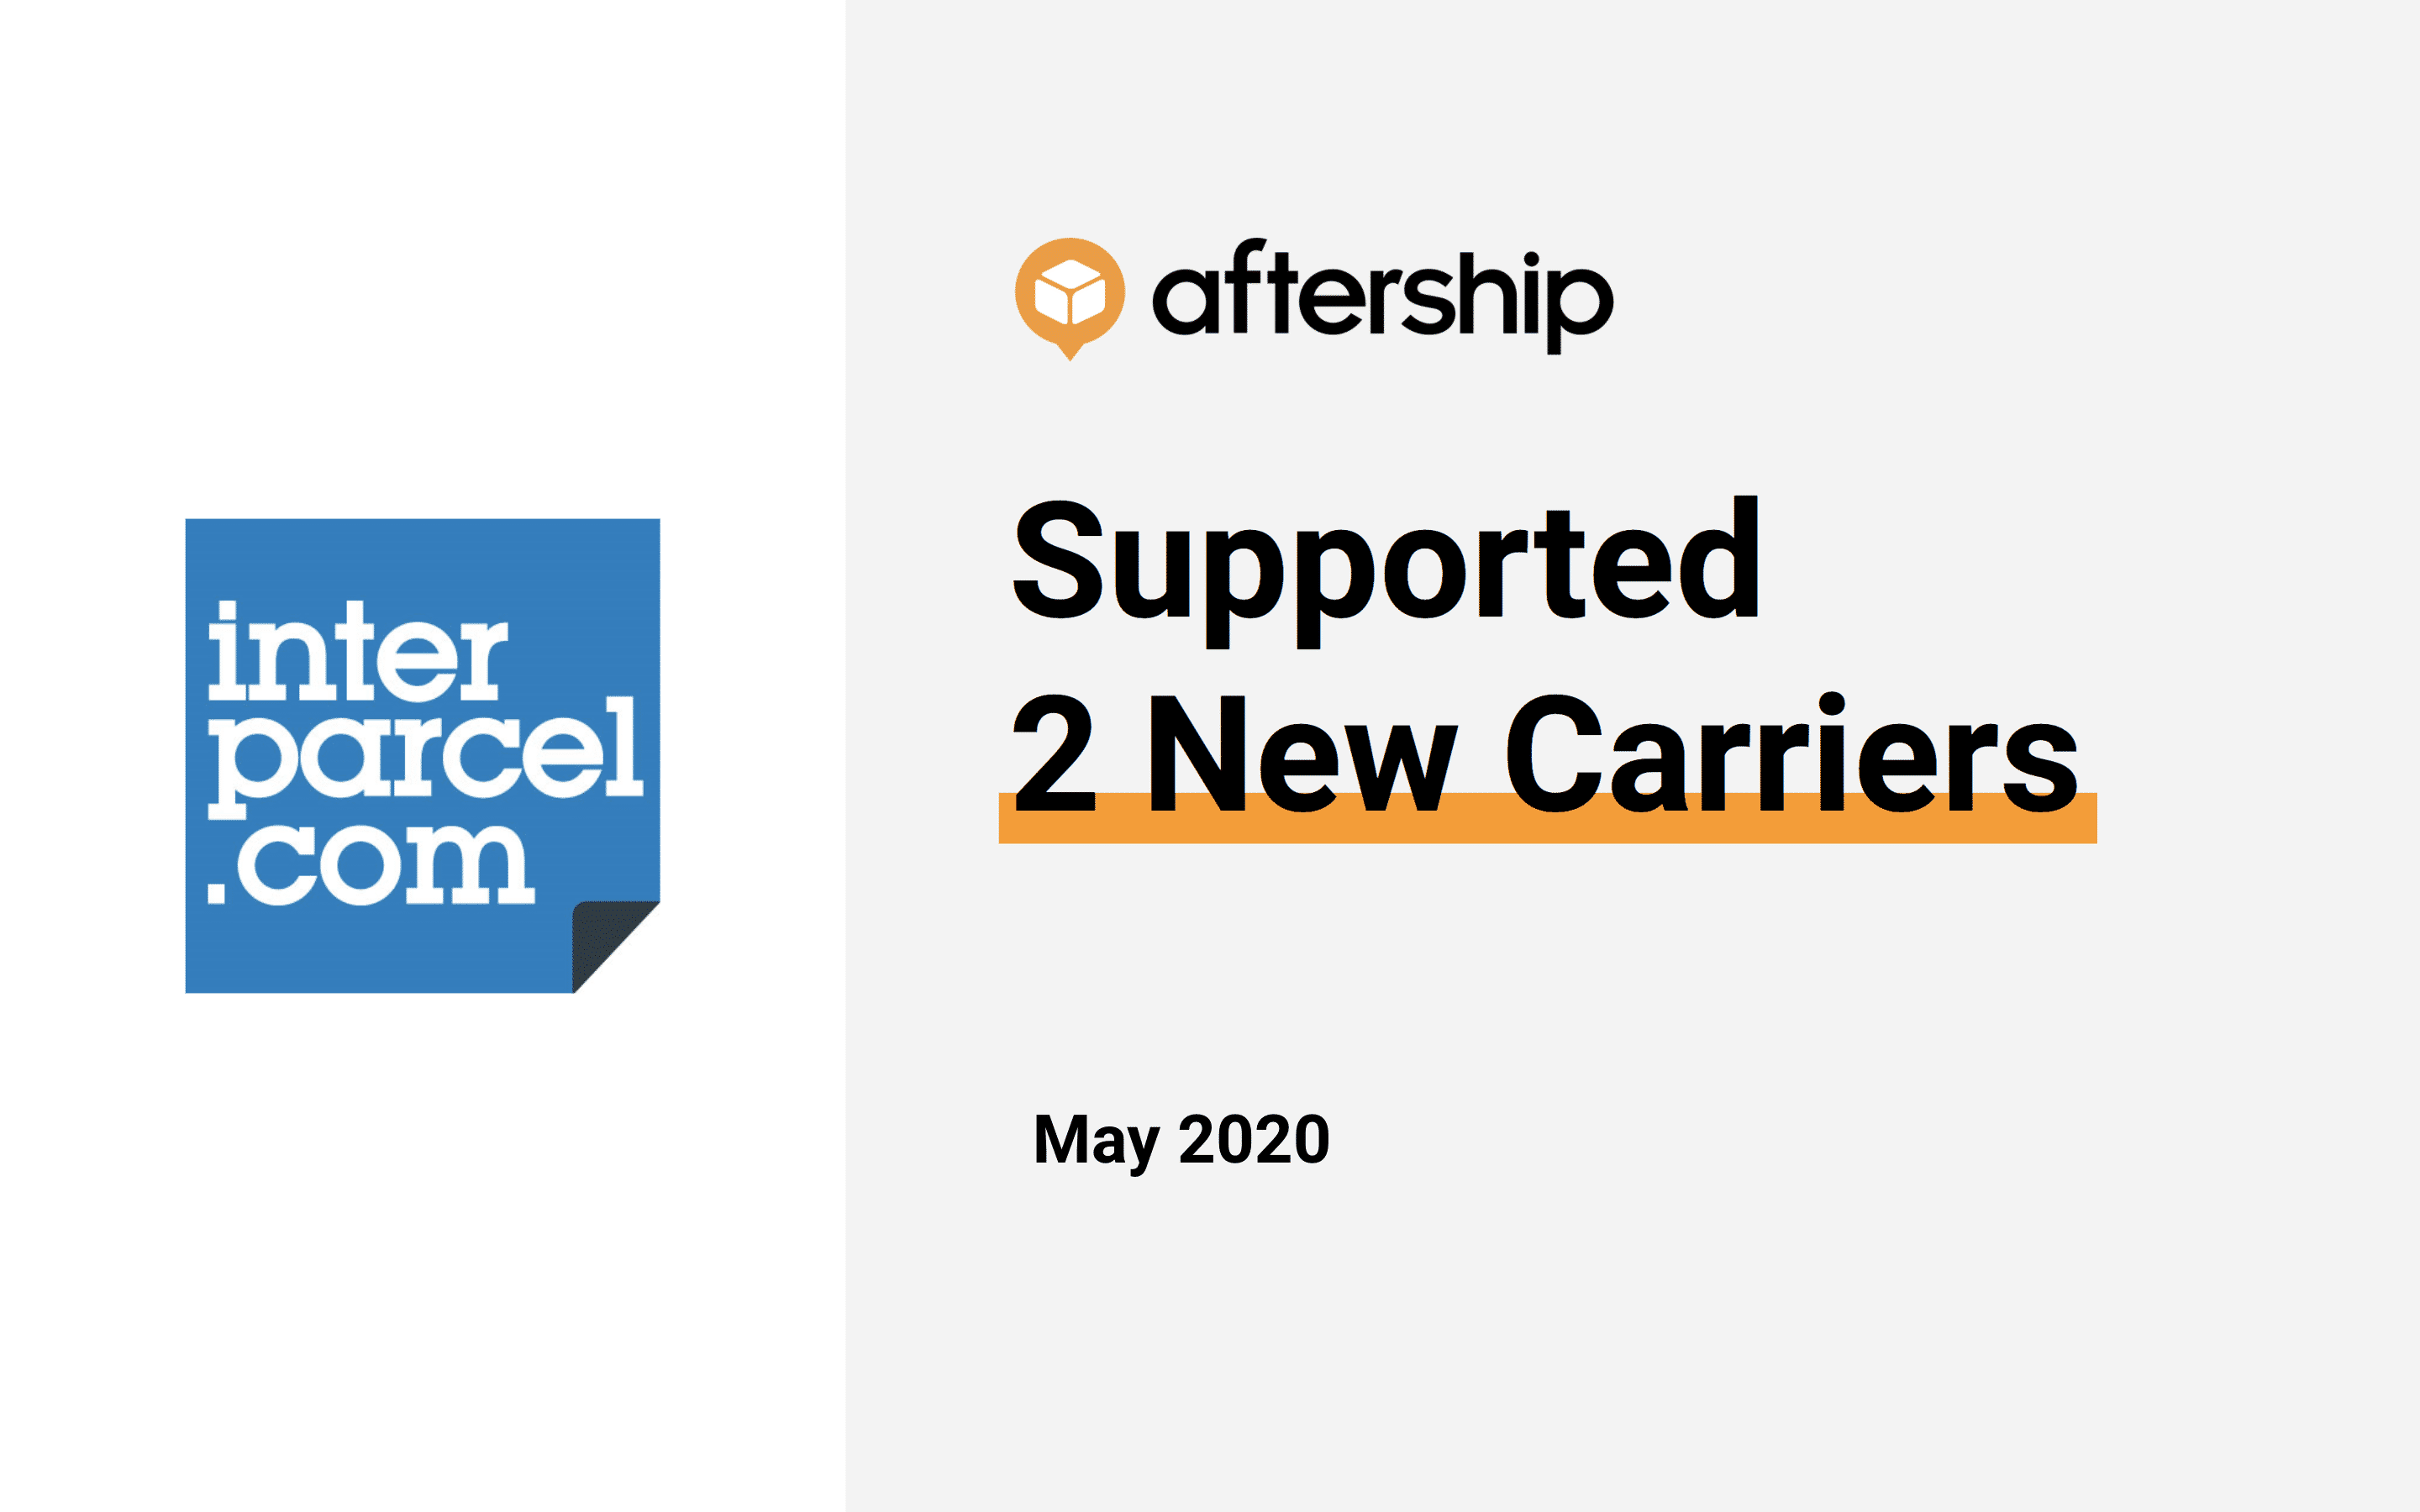 AfterShip added 2 new carriers this week (11 May 2020 to 15 May 2020)